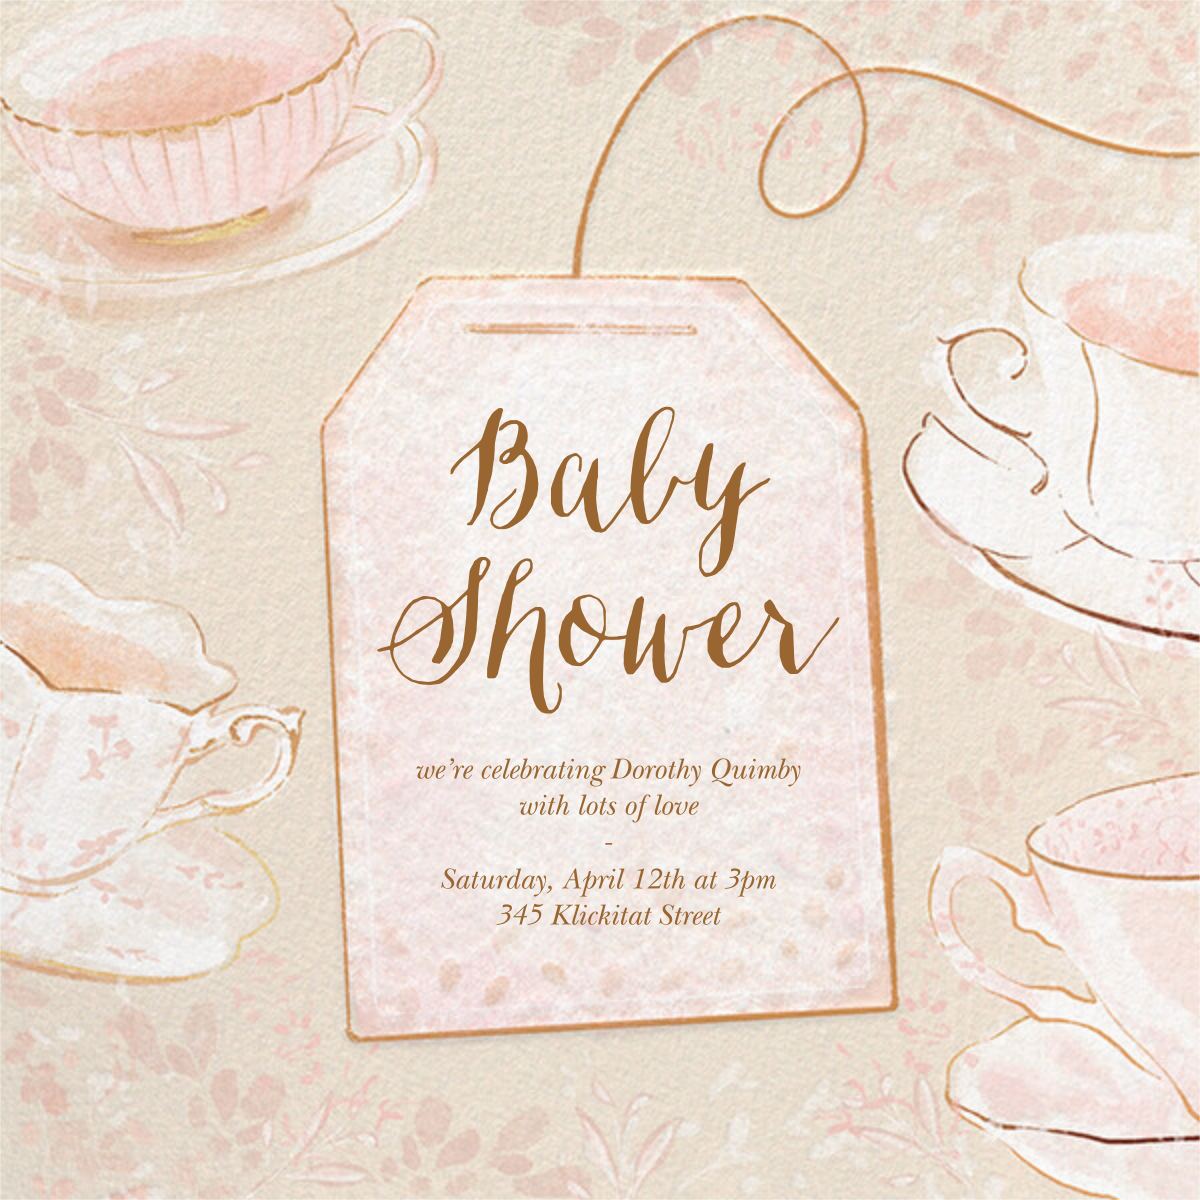 Sipping Tea - Paperless Post - Baby shower